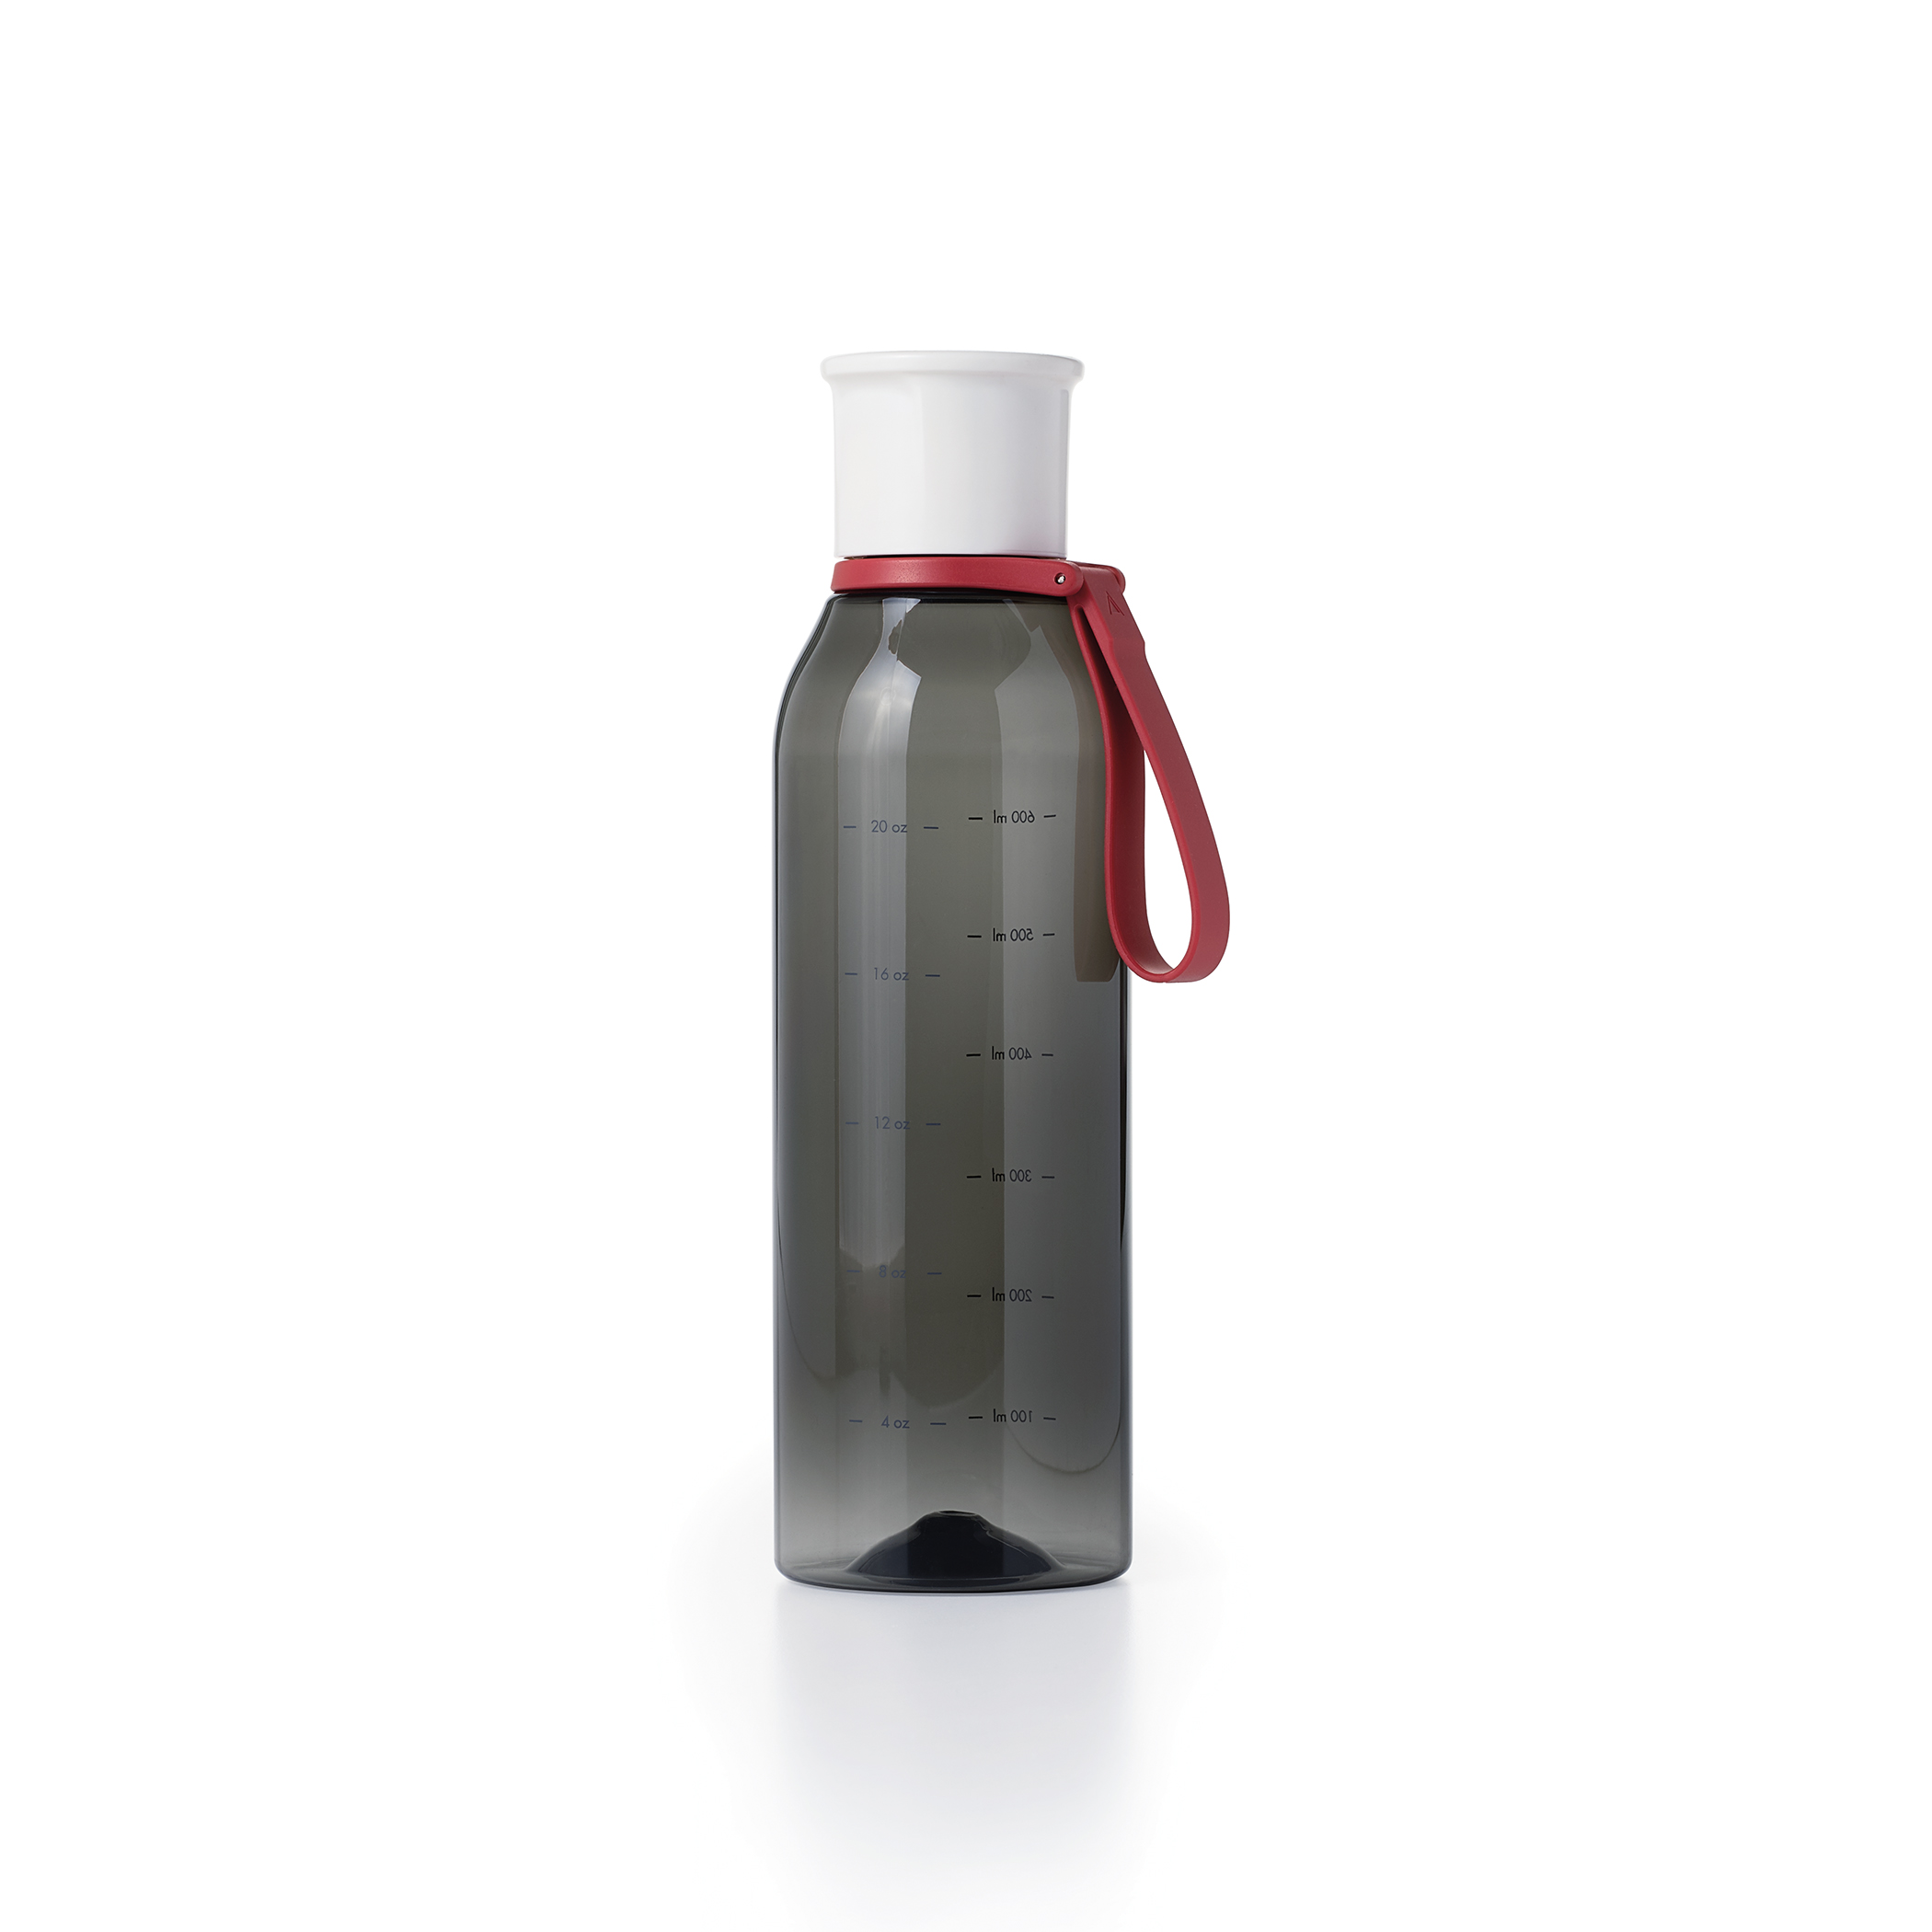 Oxo Strive Elevate Bottle White Charcoal The Potlok